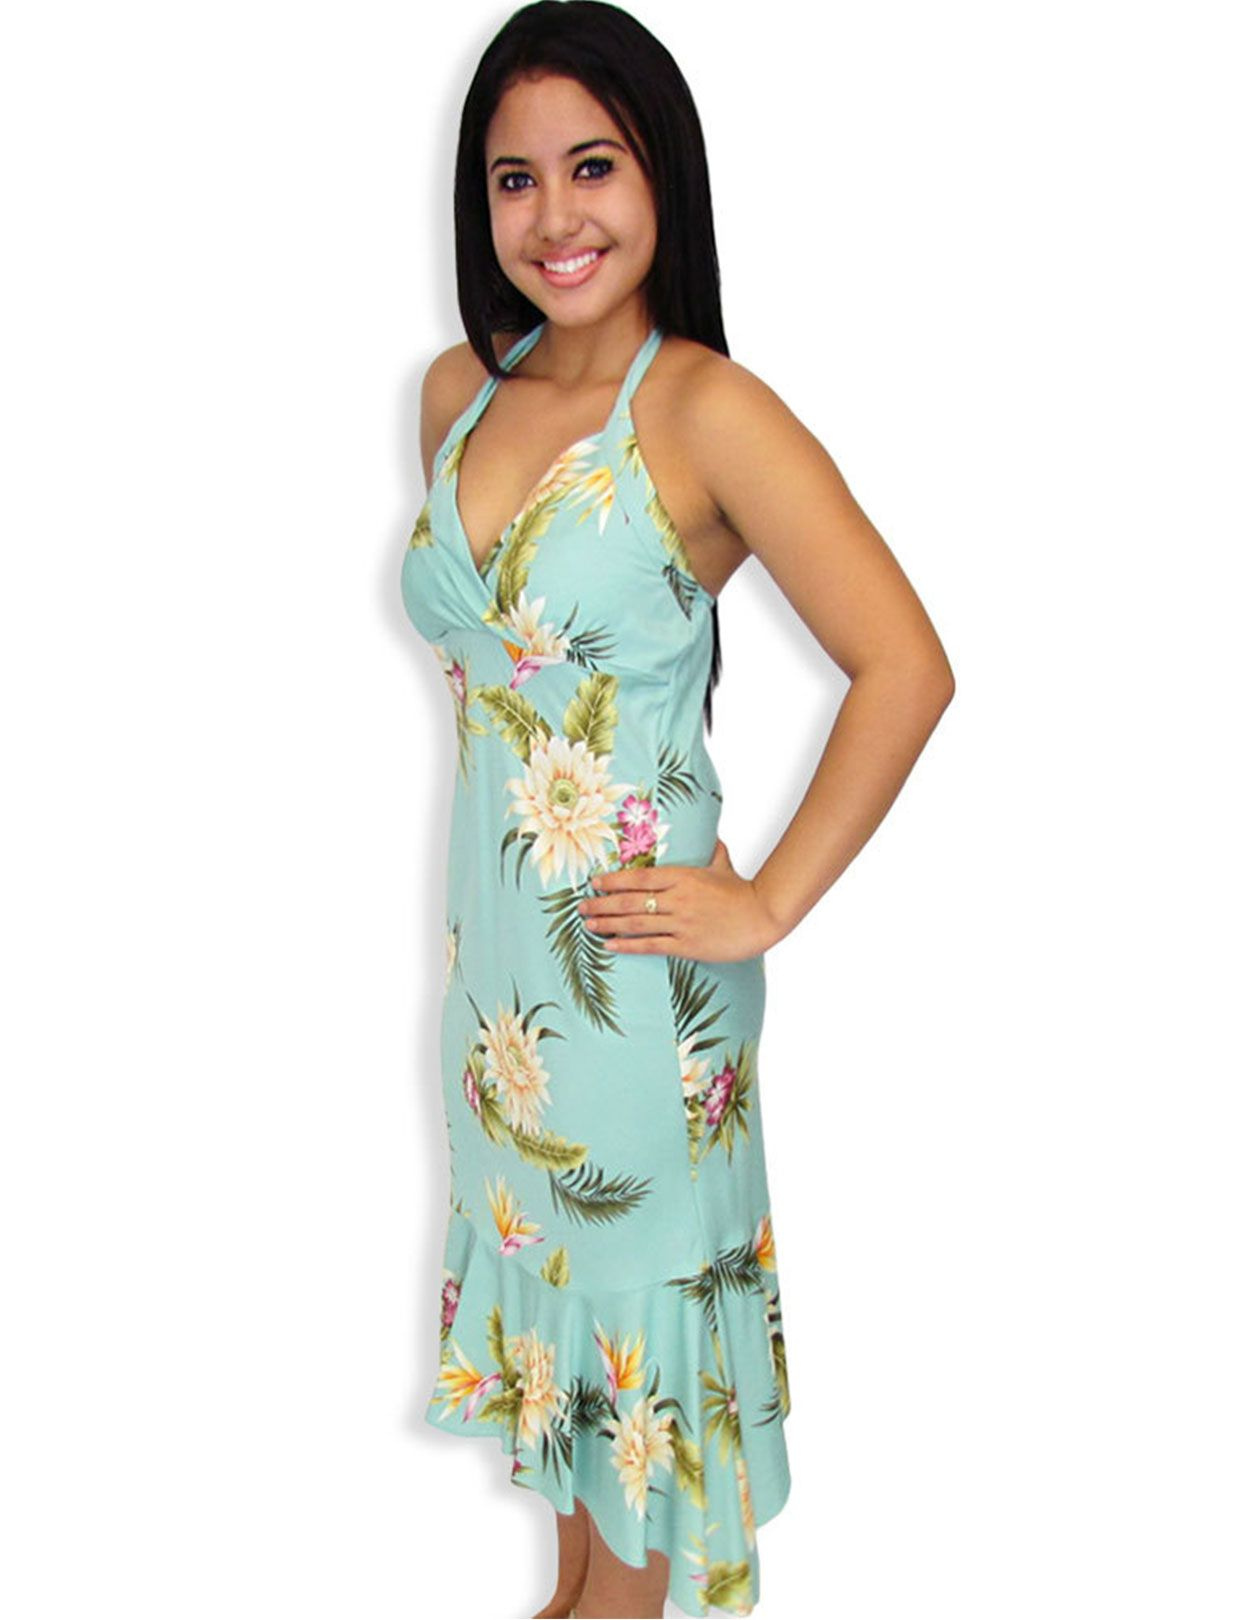 80c36a225 Women s Hawaiian mid dresses. Shop for ladies mid length dresses made in  Hawaii in a variety of tropical colors